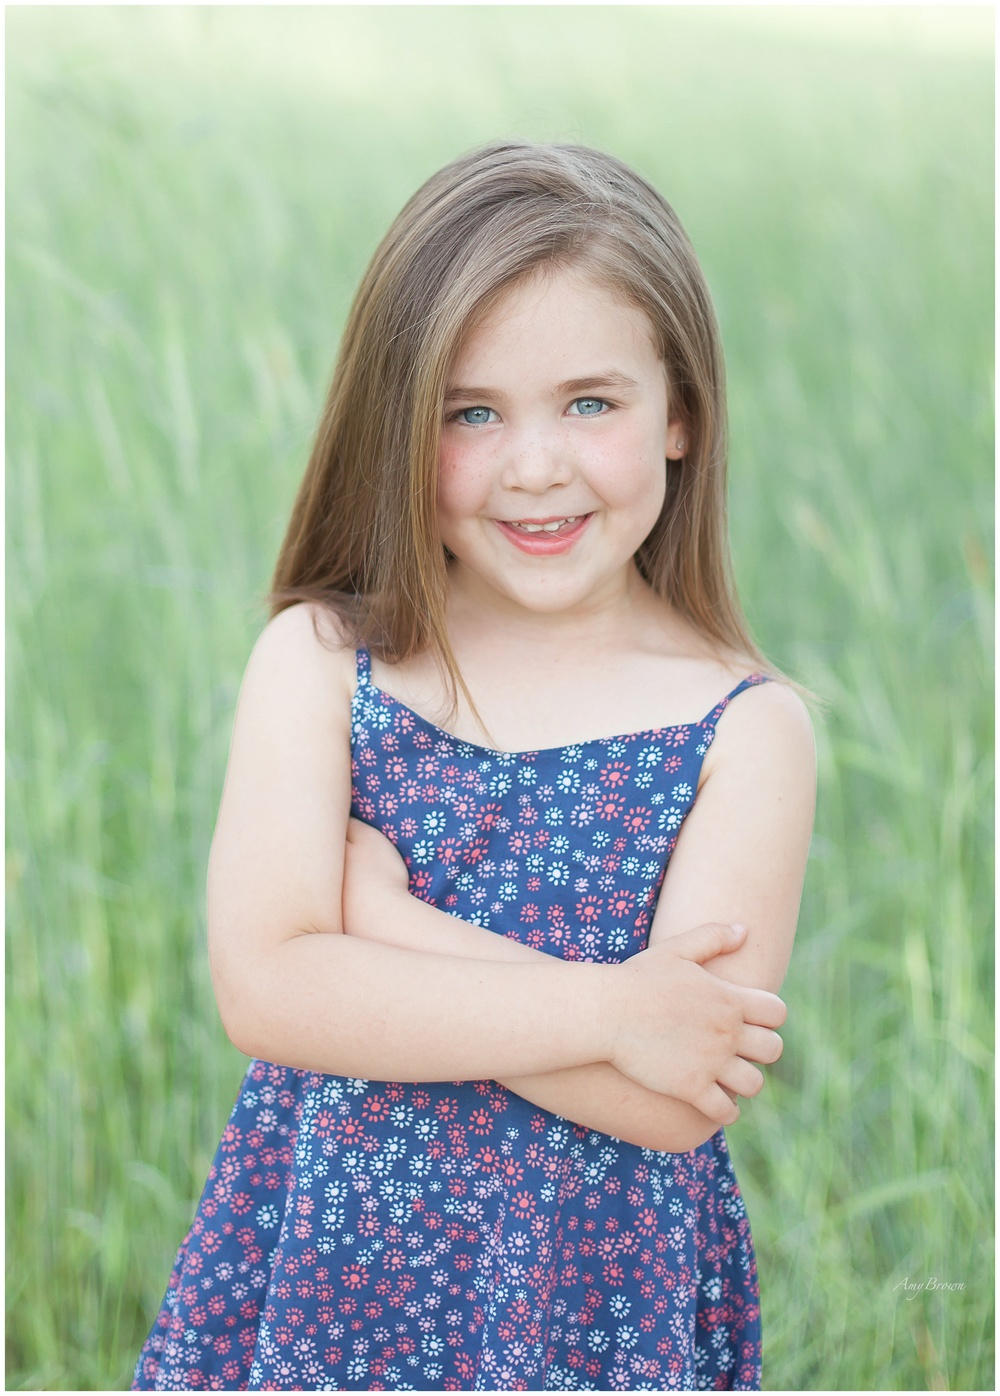 Brentwood Nh family photographer | New Hampshire family photography | Spring Mini Session